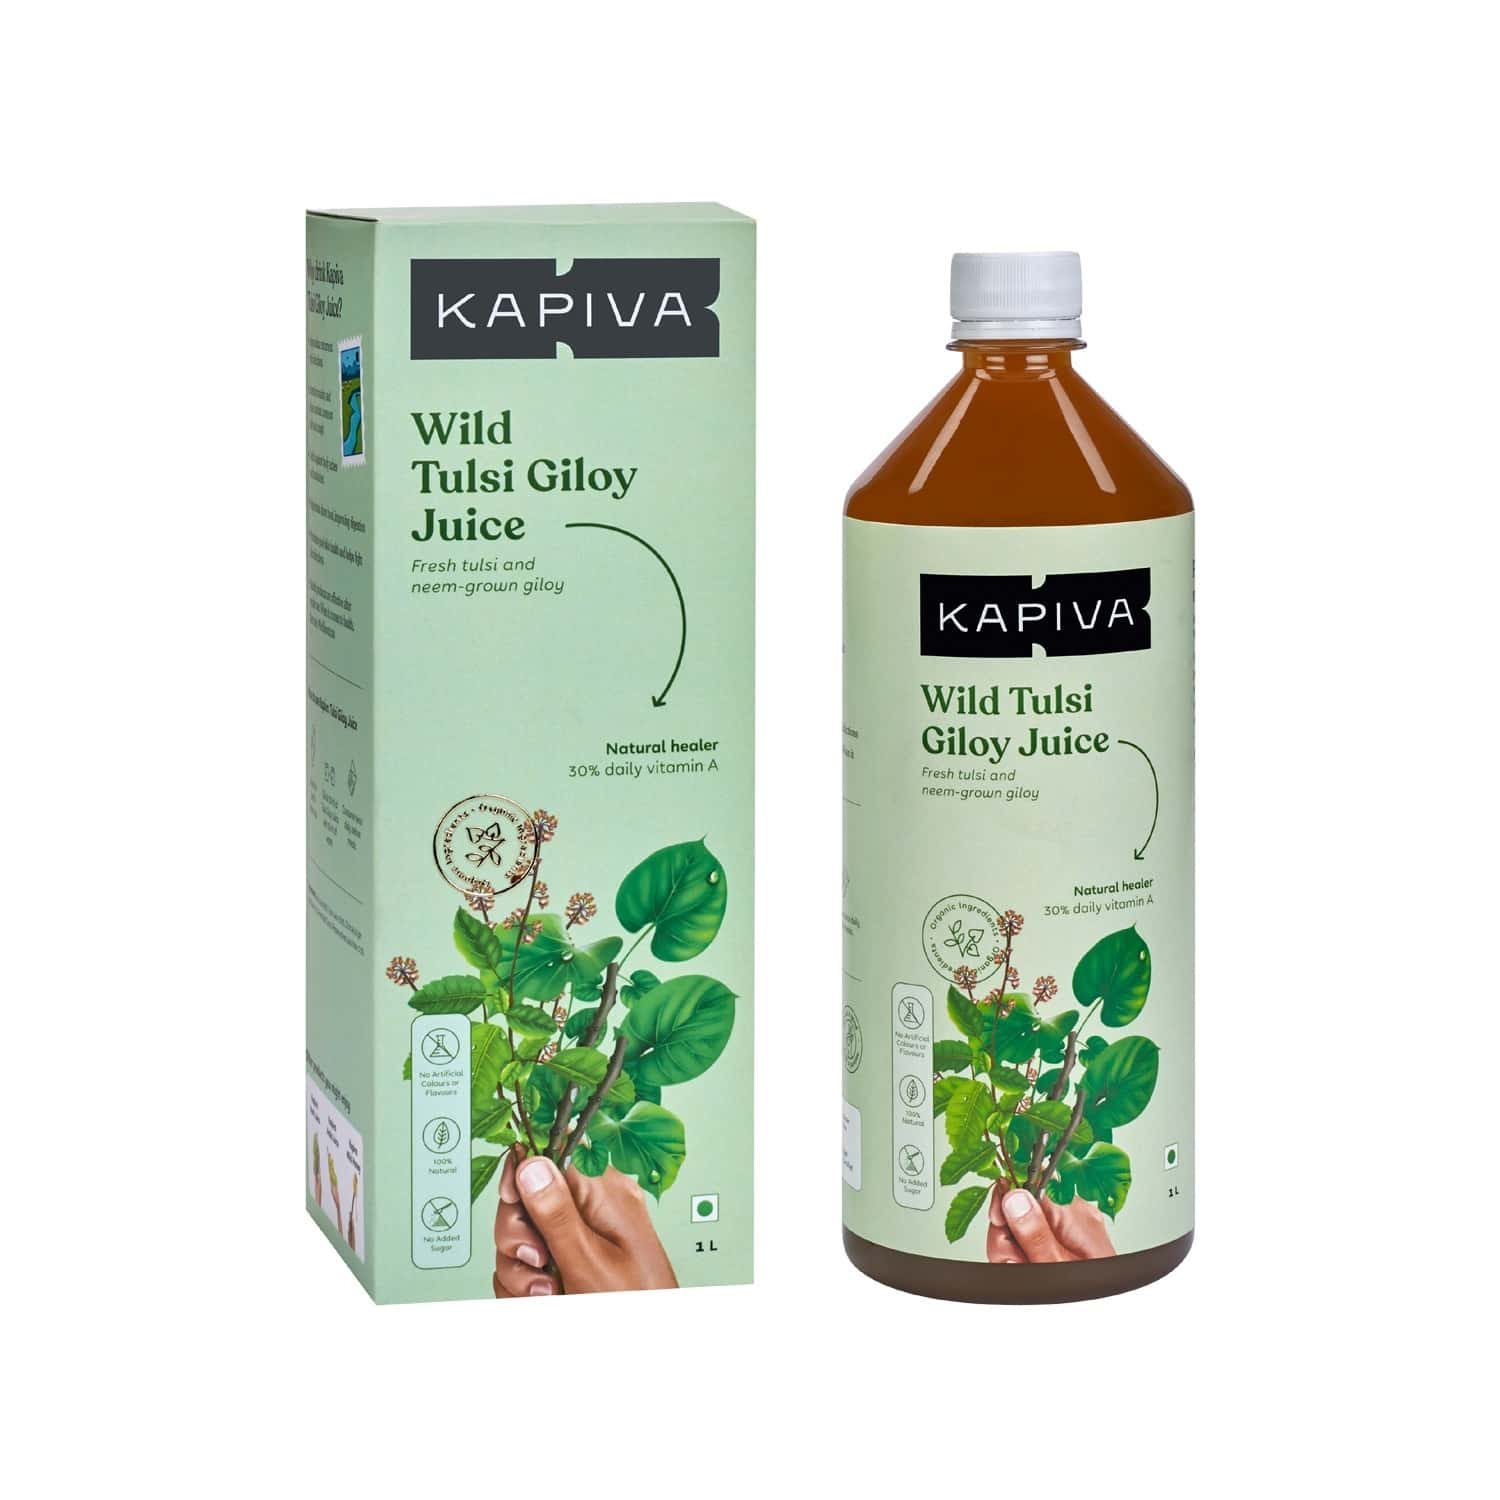 Kapiva Wild Tulsi Giloy Juice 1l   Natural Juice For Building Immunity   First Brand To Use Neem Grown Giloy Stems With Fresh Tulsi Leaves   No Added Sugar